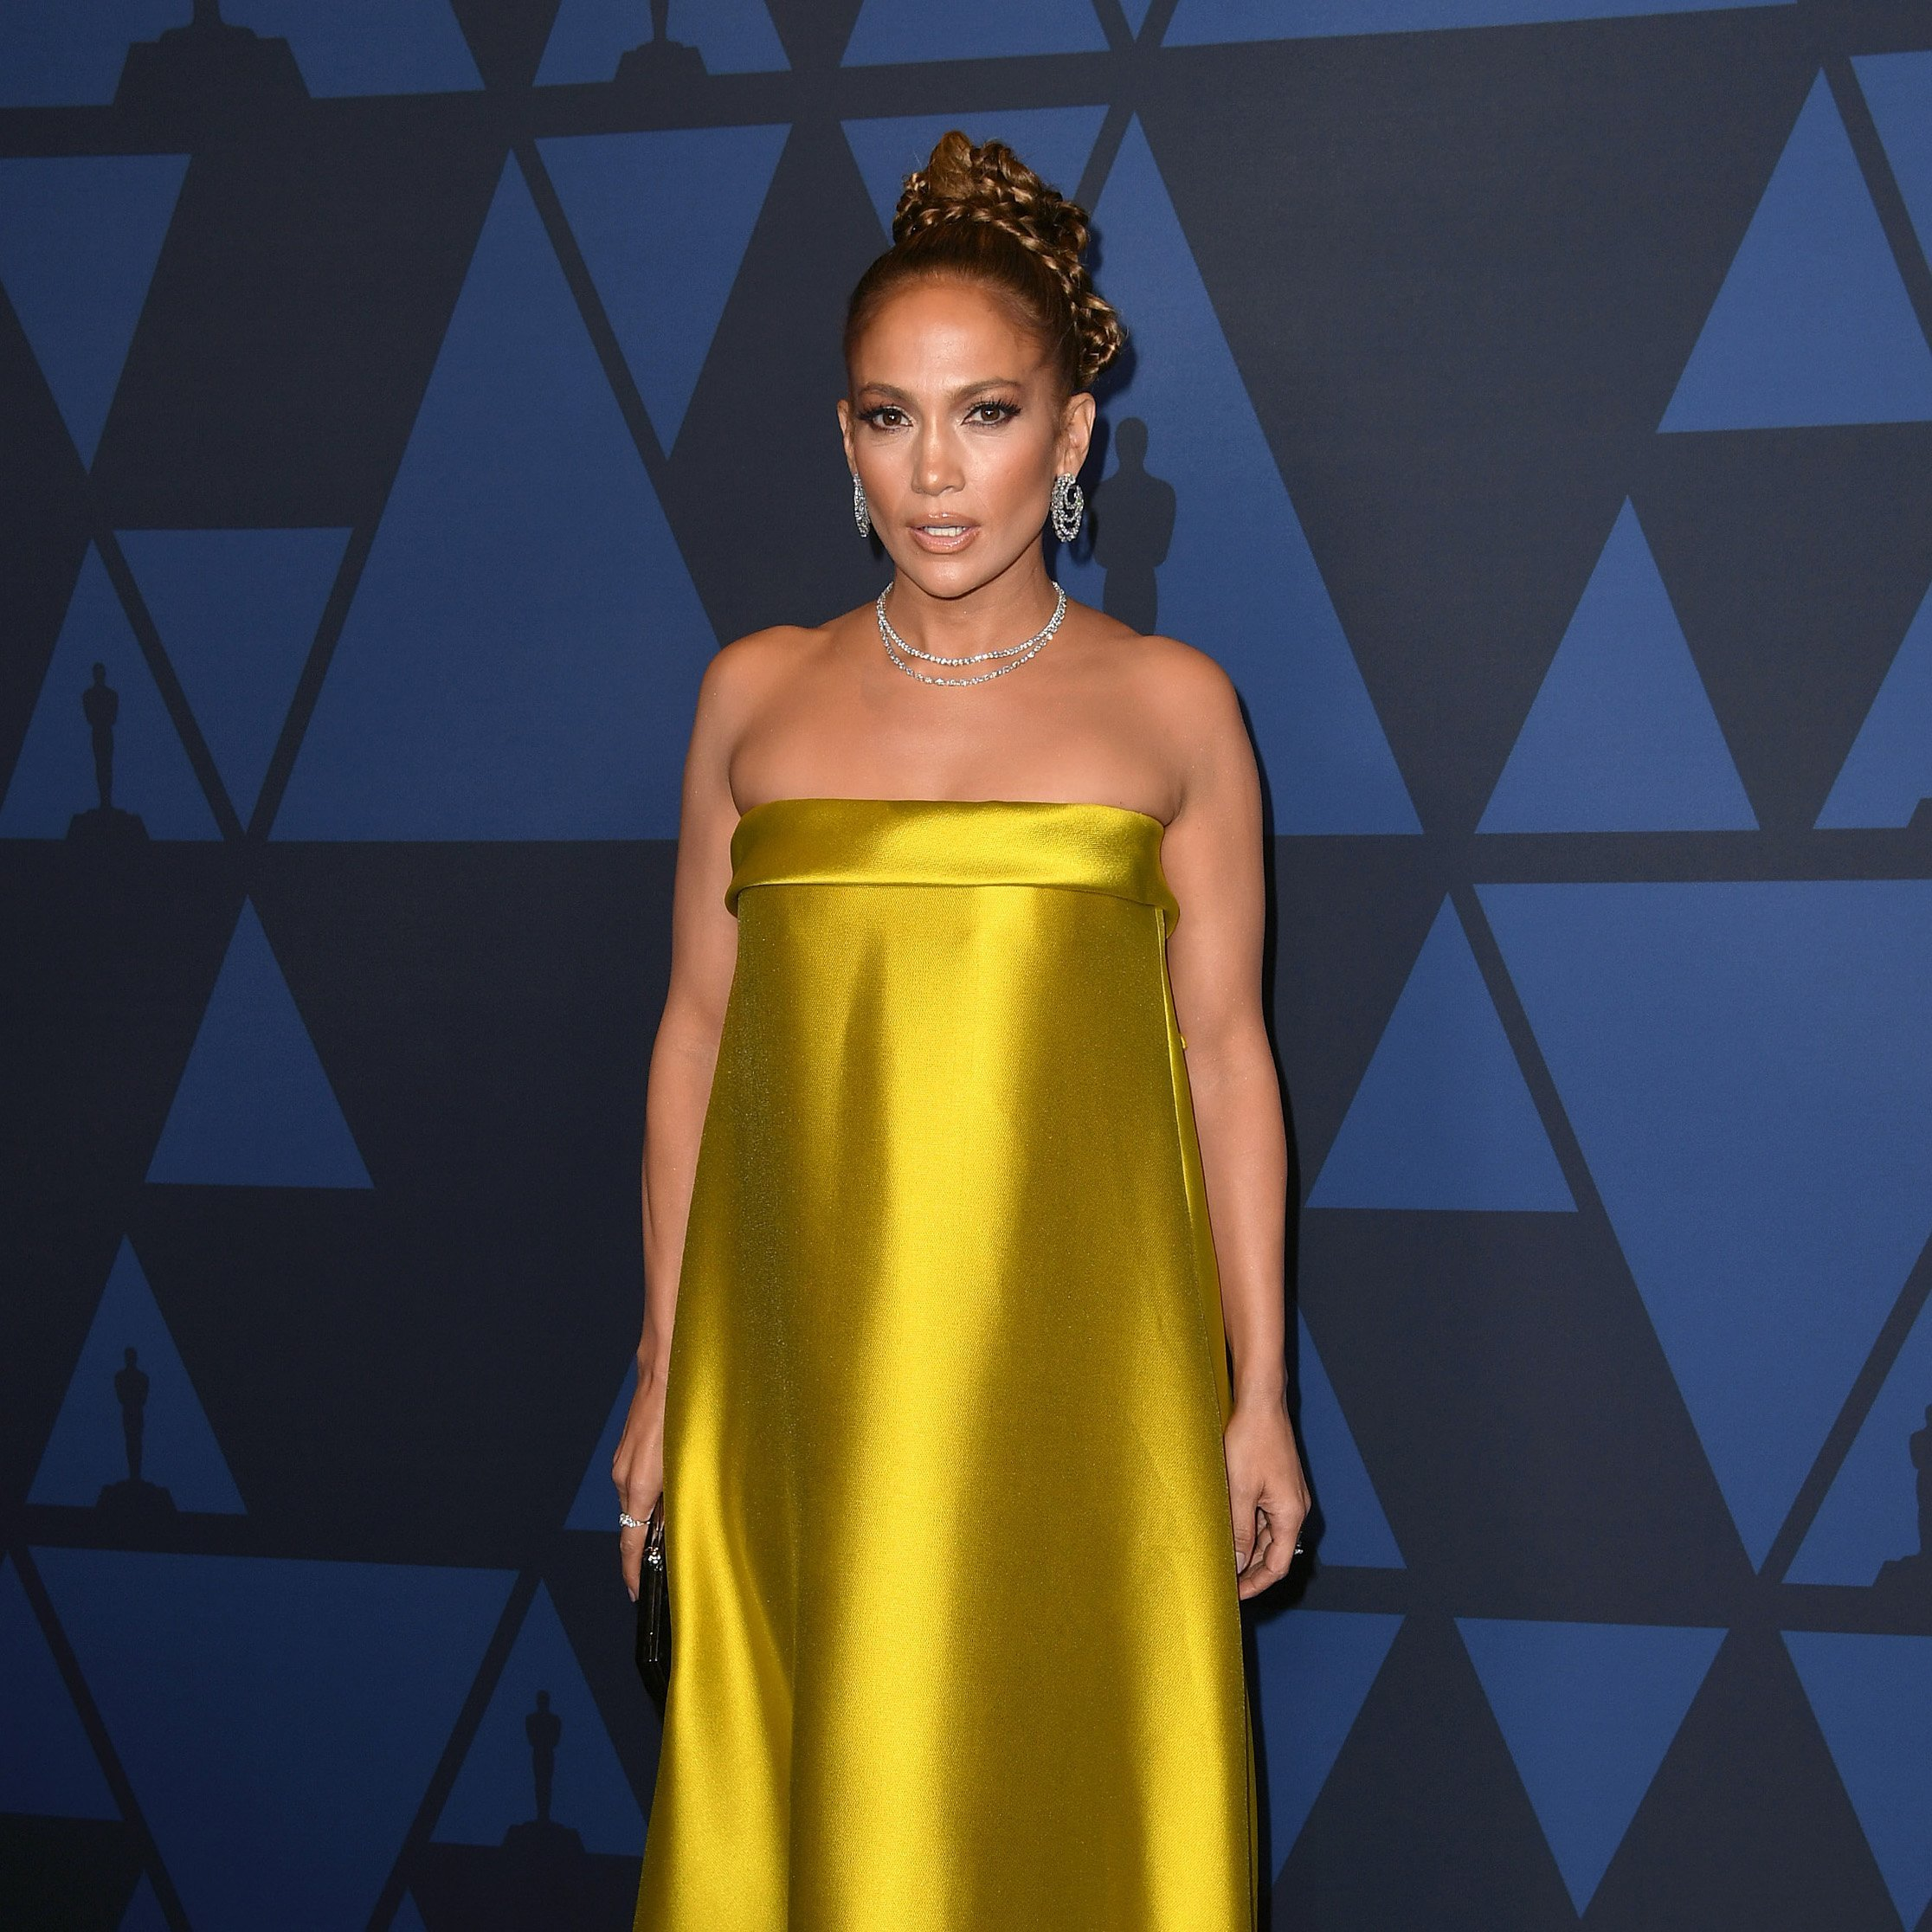 Jennifer Lopez attends the Annual Governors Awards in Hollywood, California on October 27, 2019 | Photo: Getty Images